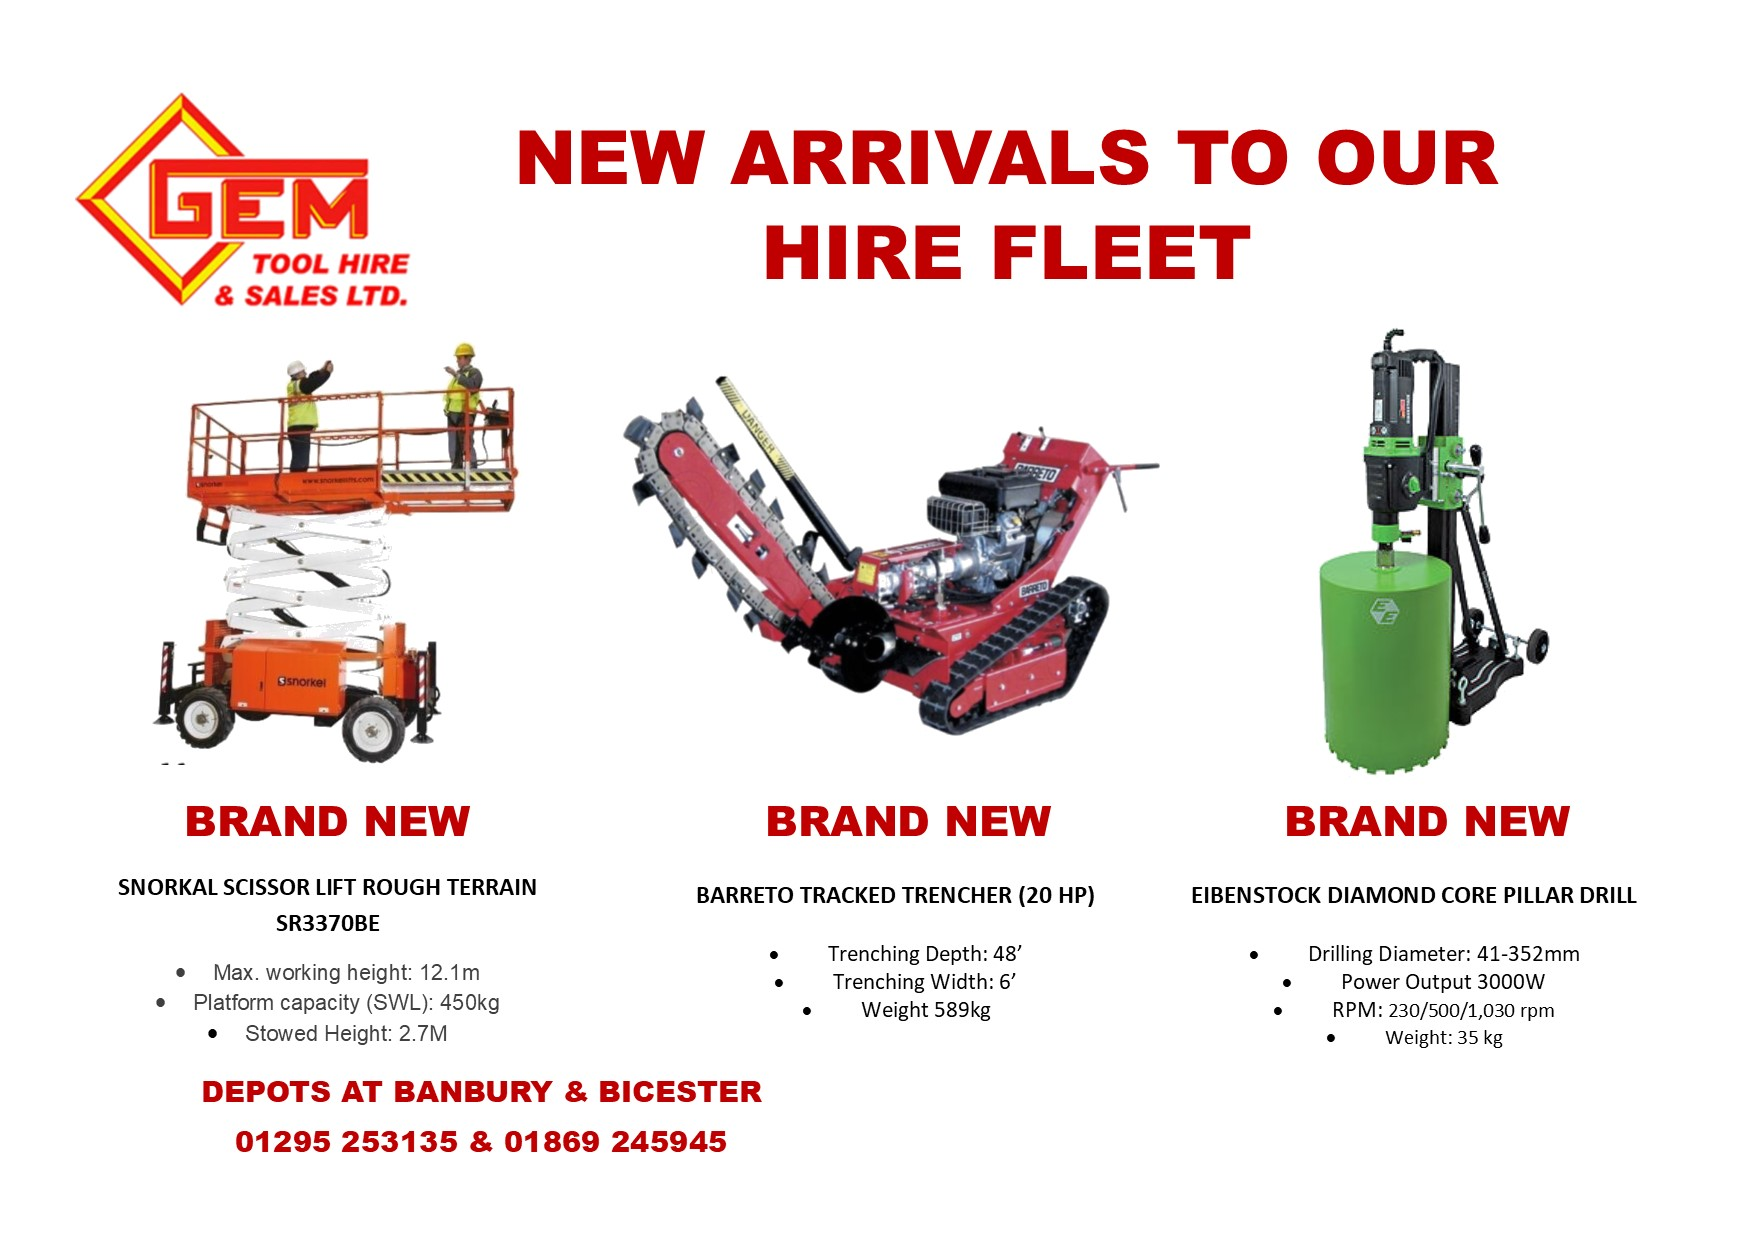 Gem Tool Hire Professional Tools For Every Type Of Job